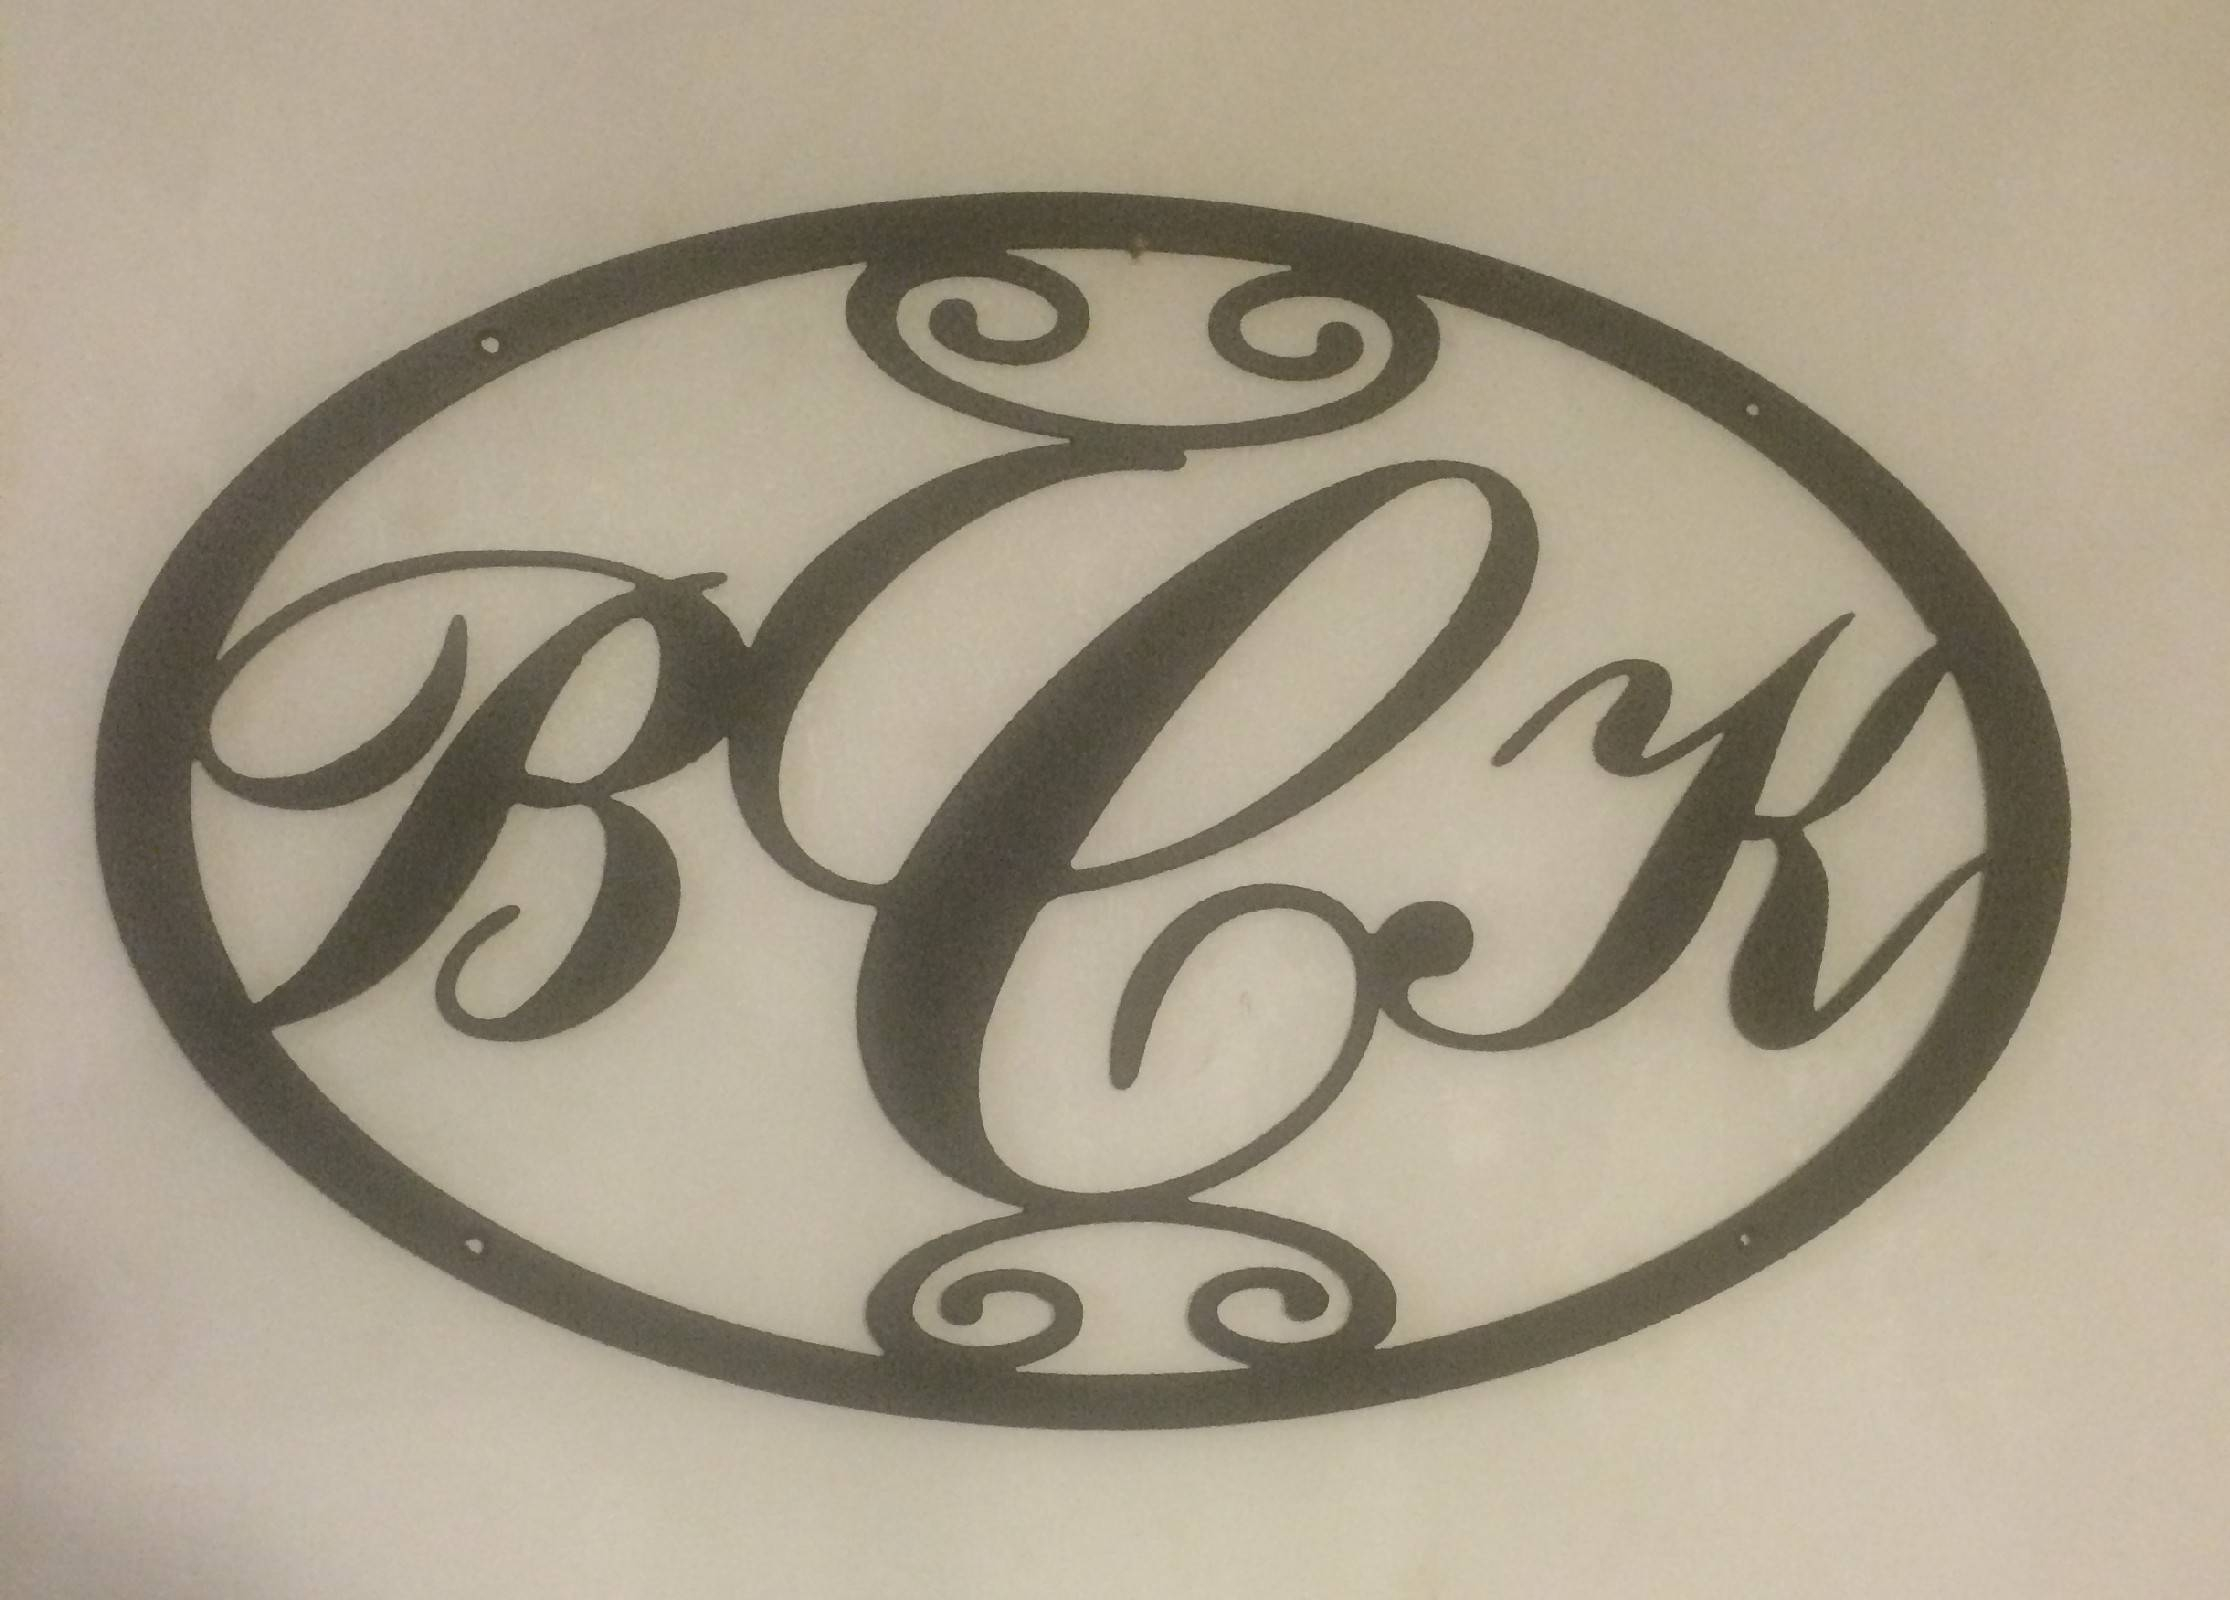 Back 40 Metal Worx – Unique Metal Wall Art And Yard Signs With Regard To Newest Monogram Metal Wall Art (View 2 of 20)